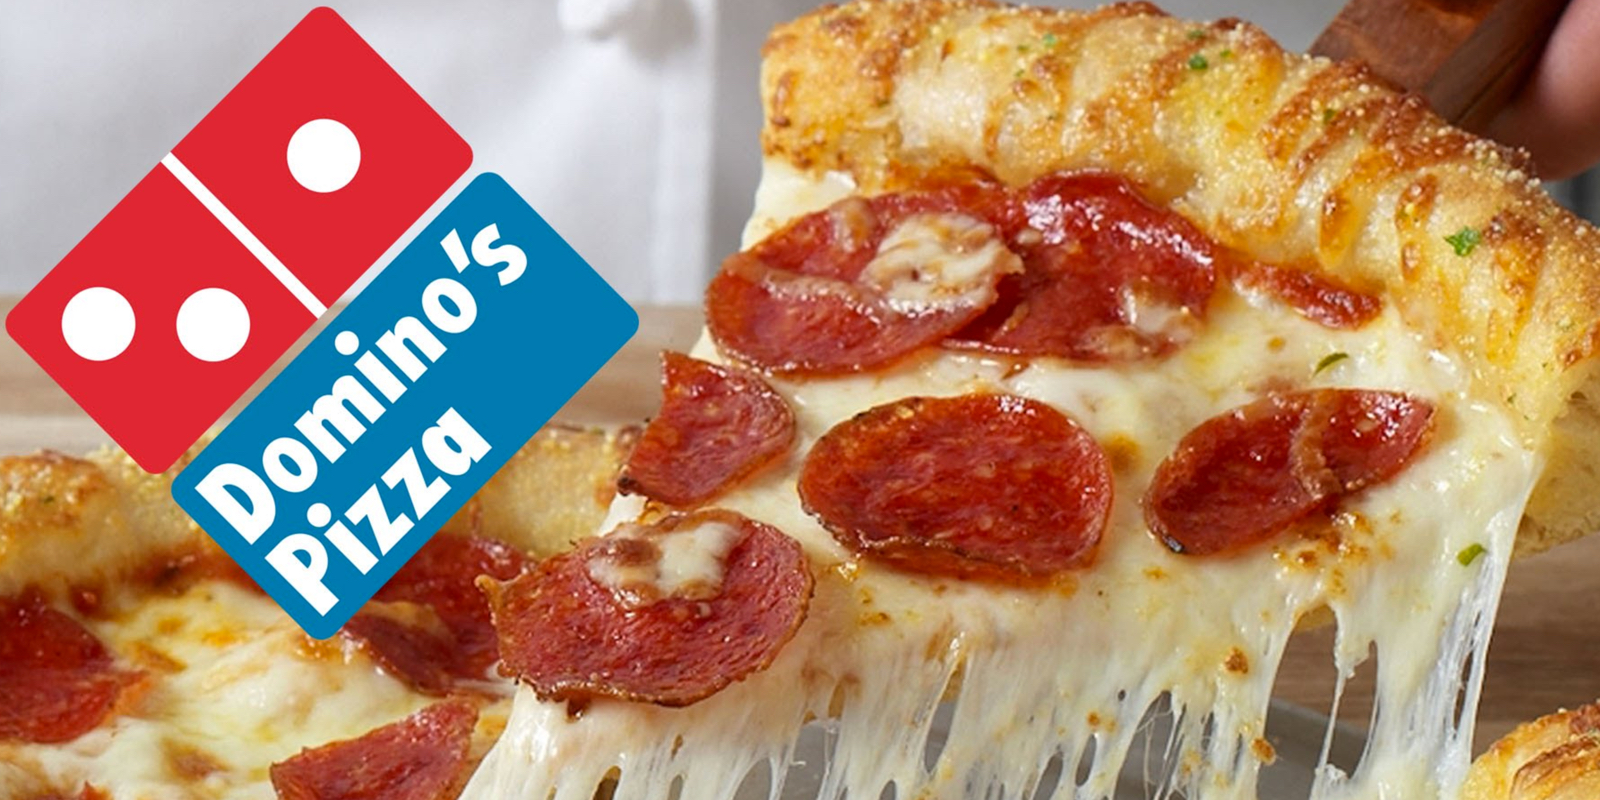 Score up to 20% off your next Domino's Pizza order with this gift card deal